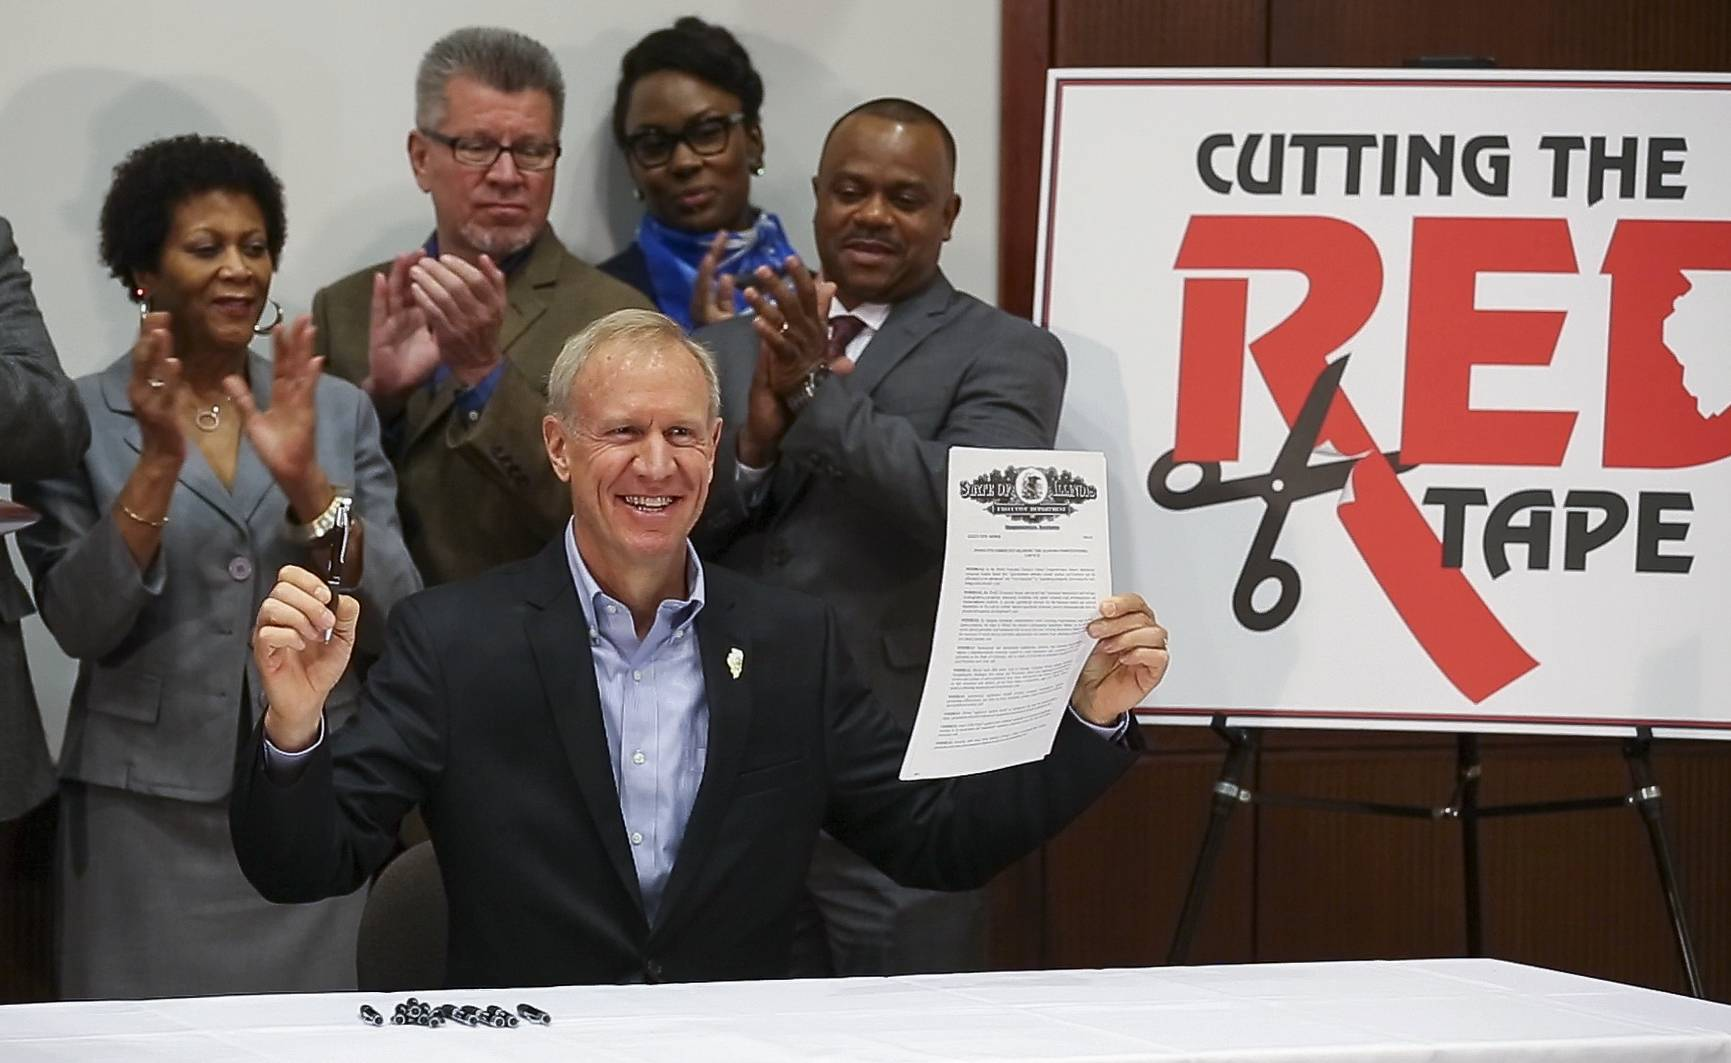 Gov. Bruce Rauner signs an executive order that he says is designed to cut red tape and grow the economy during a news conference Monday at the College of DuPage.